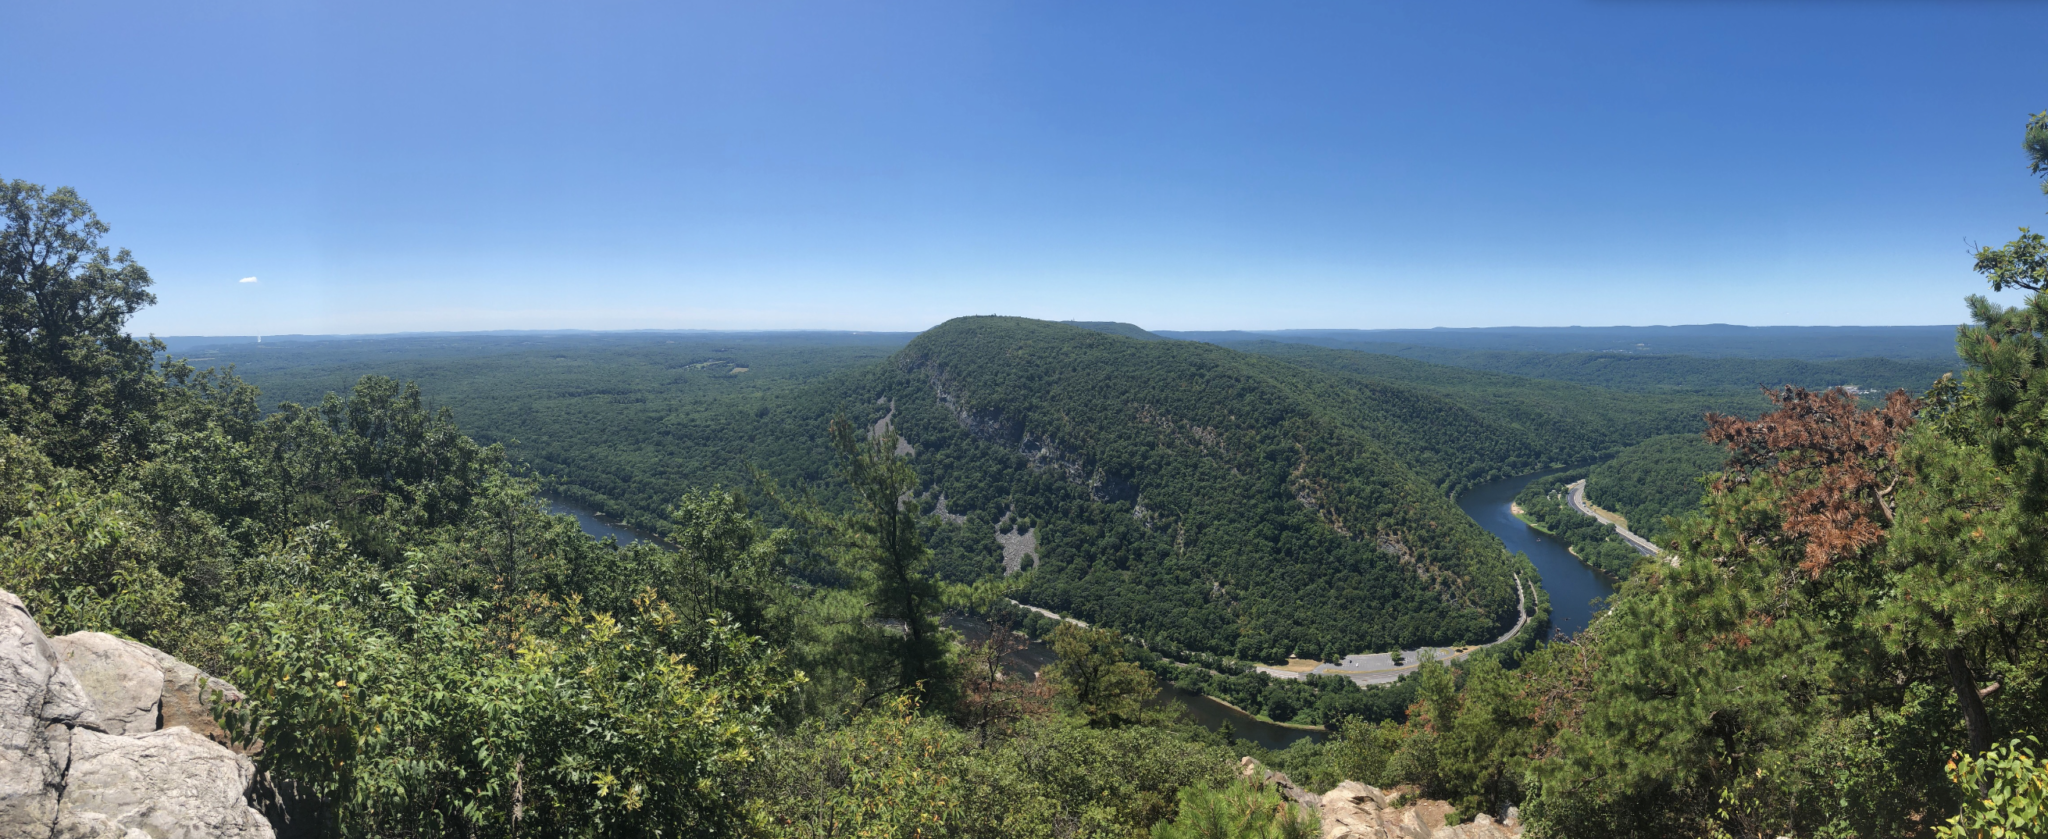 Delaware Water Gap, Mt. Tammany, Mt. Minsi, Hiking